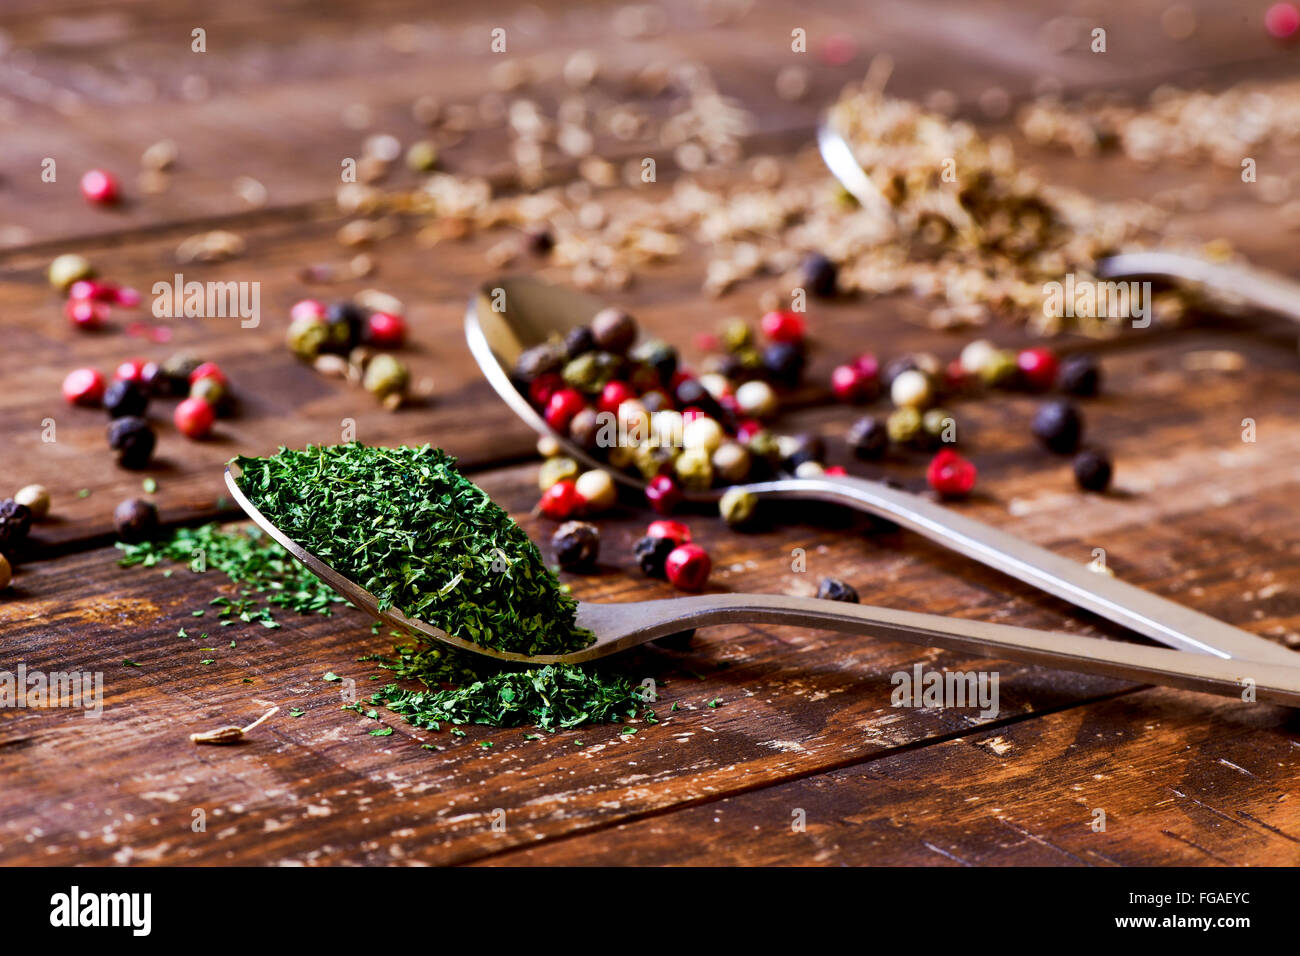 three spoons full of chopped dried parsley, peppercorns of different varieties and anise seeds on a rustic wooden - Stock Image